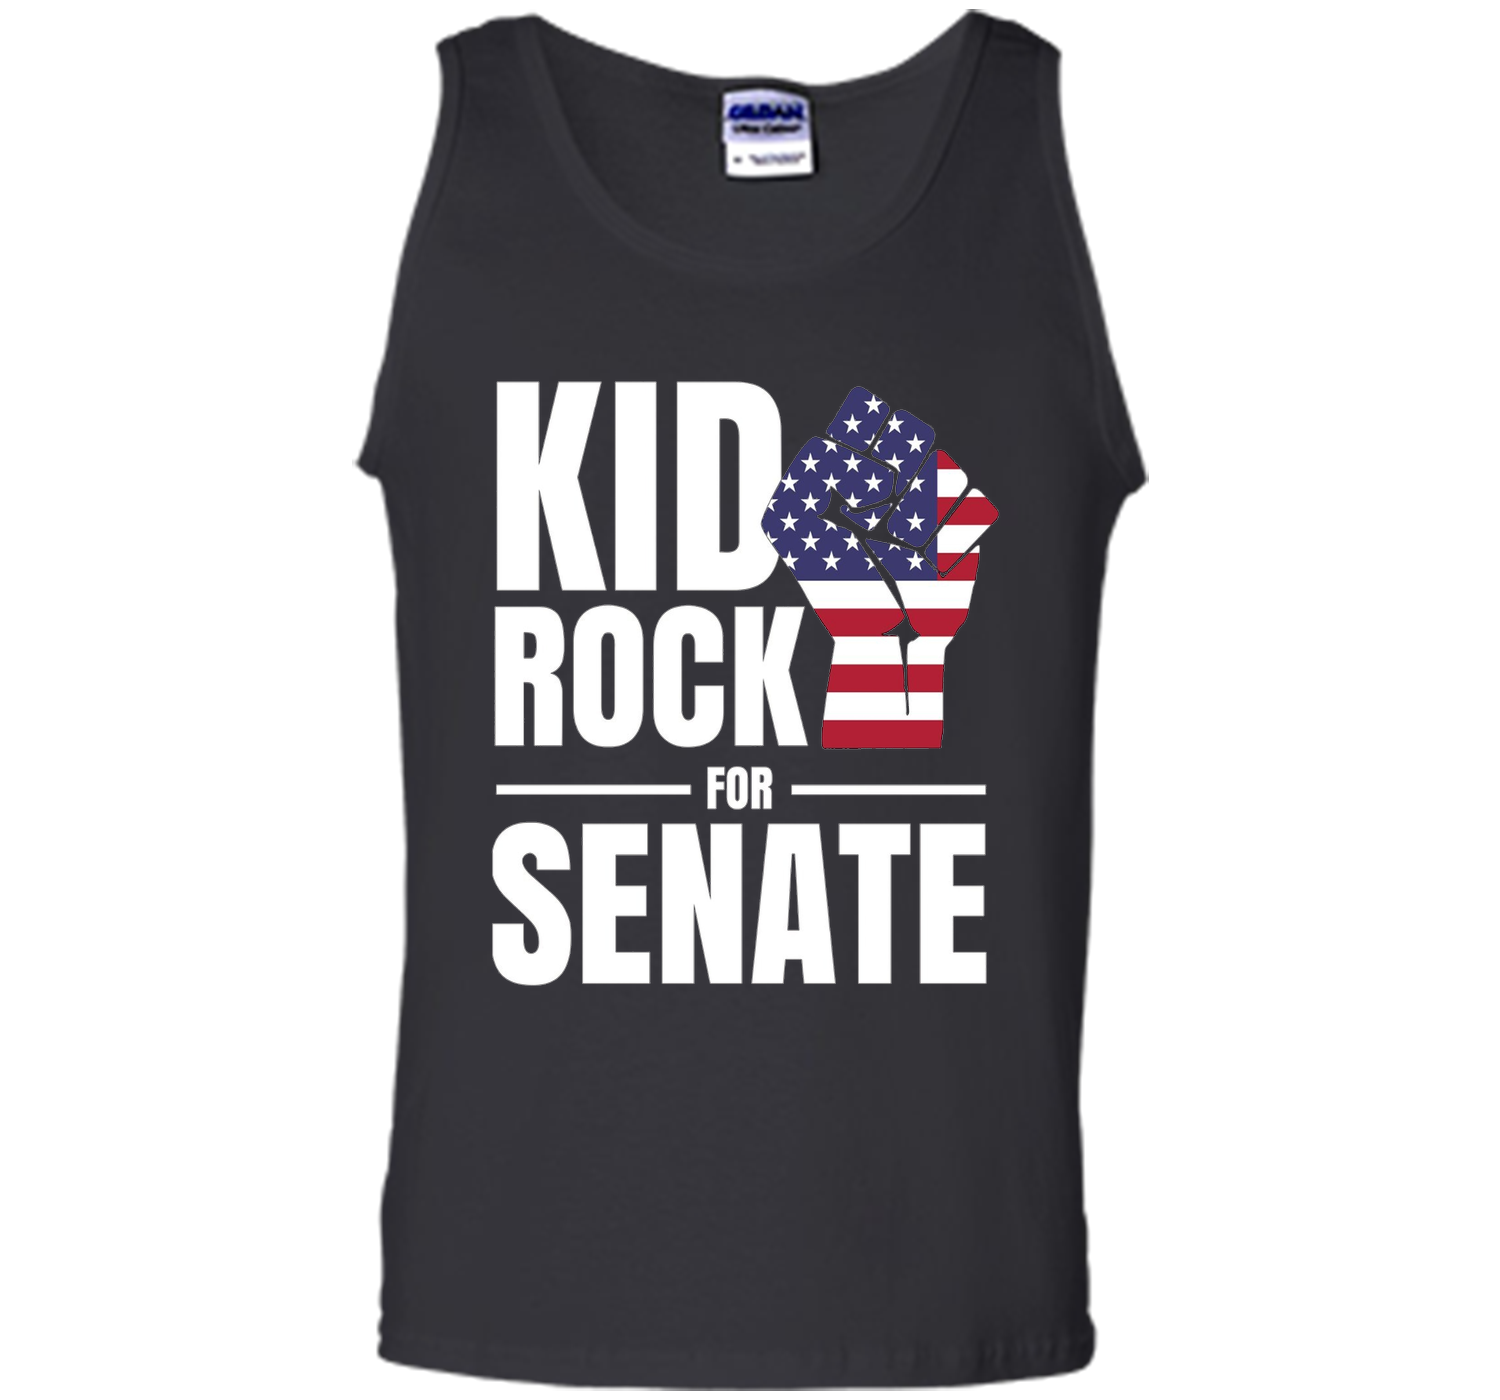 ebbb9cd3b CAMPAIGN Kid For US Senate Election Shirt In Rock We Trust shirt ...